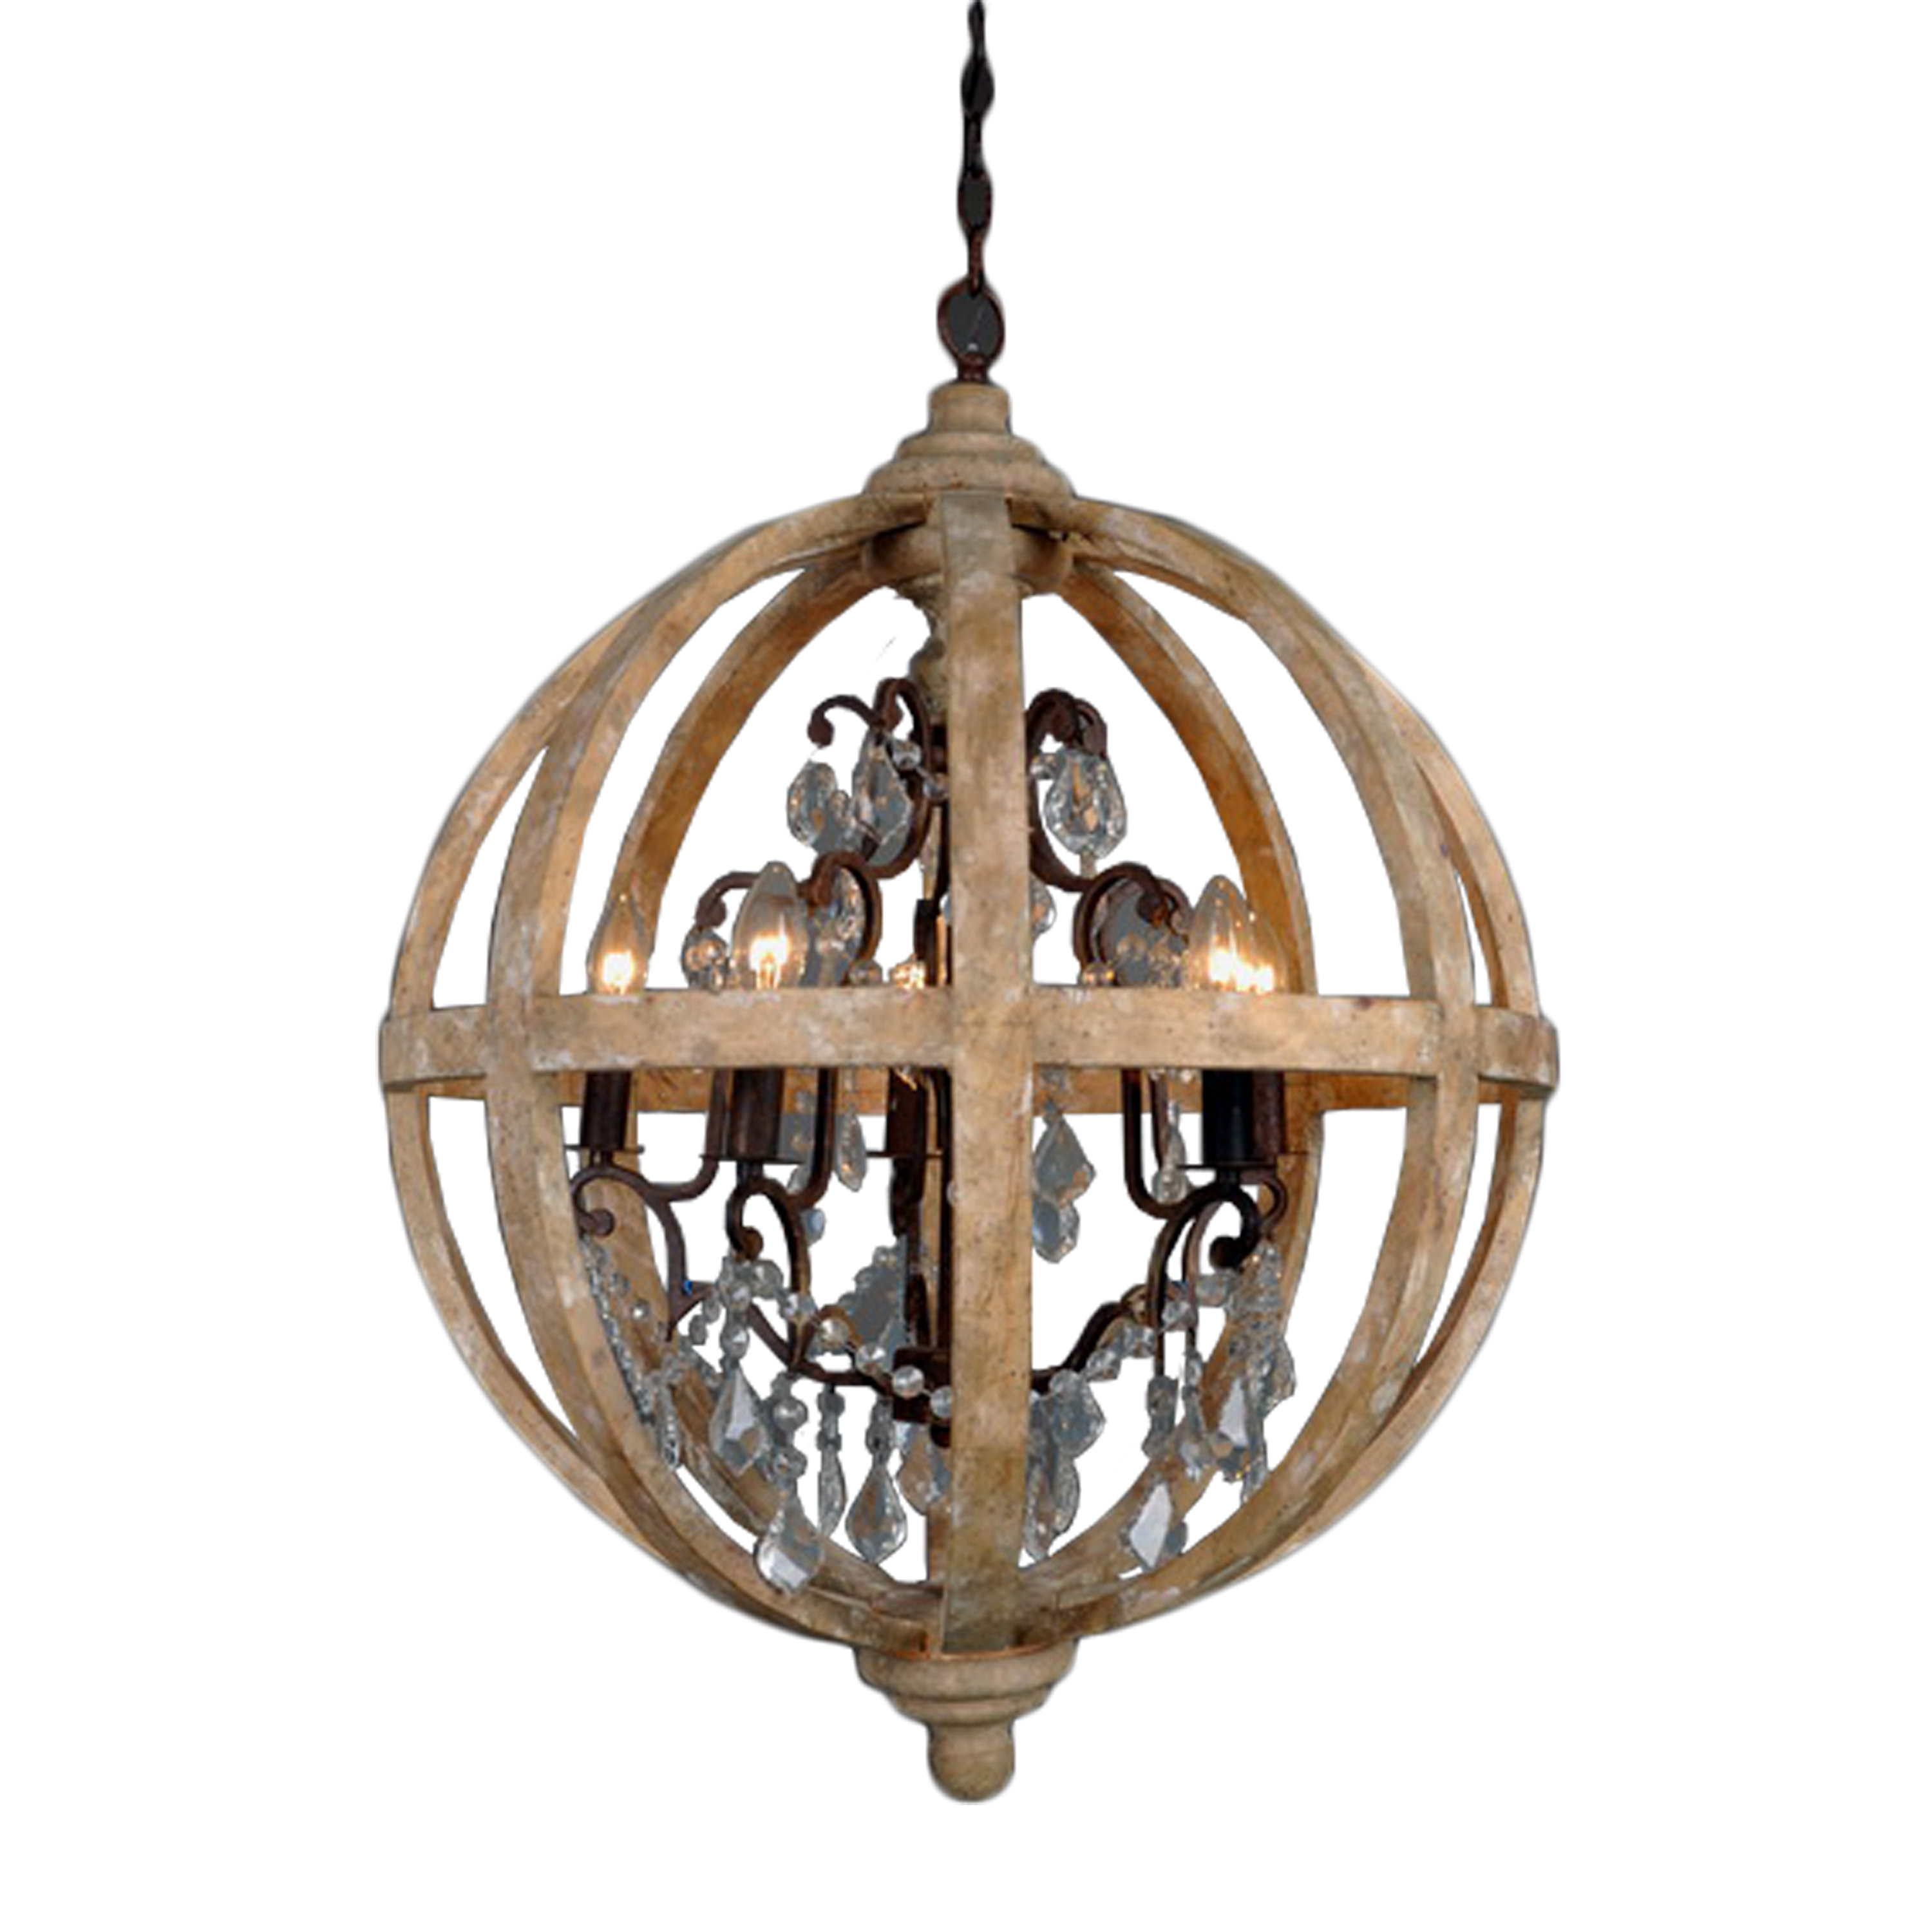 Andreana 5 Light Globe Chandelier With Most Current Filipe Globe Chandeliers (View 3 of 20)